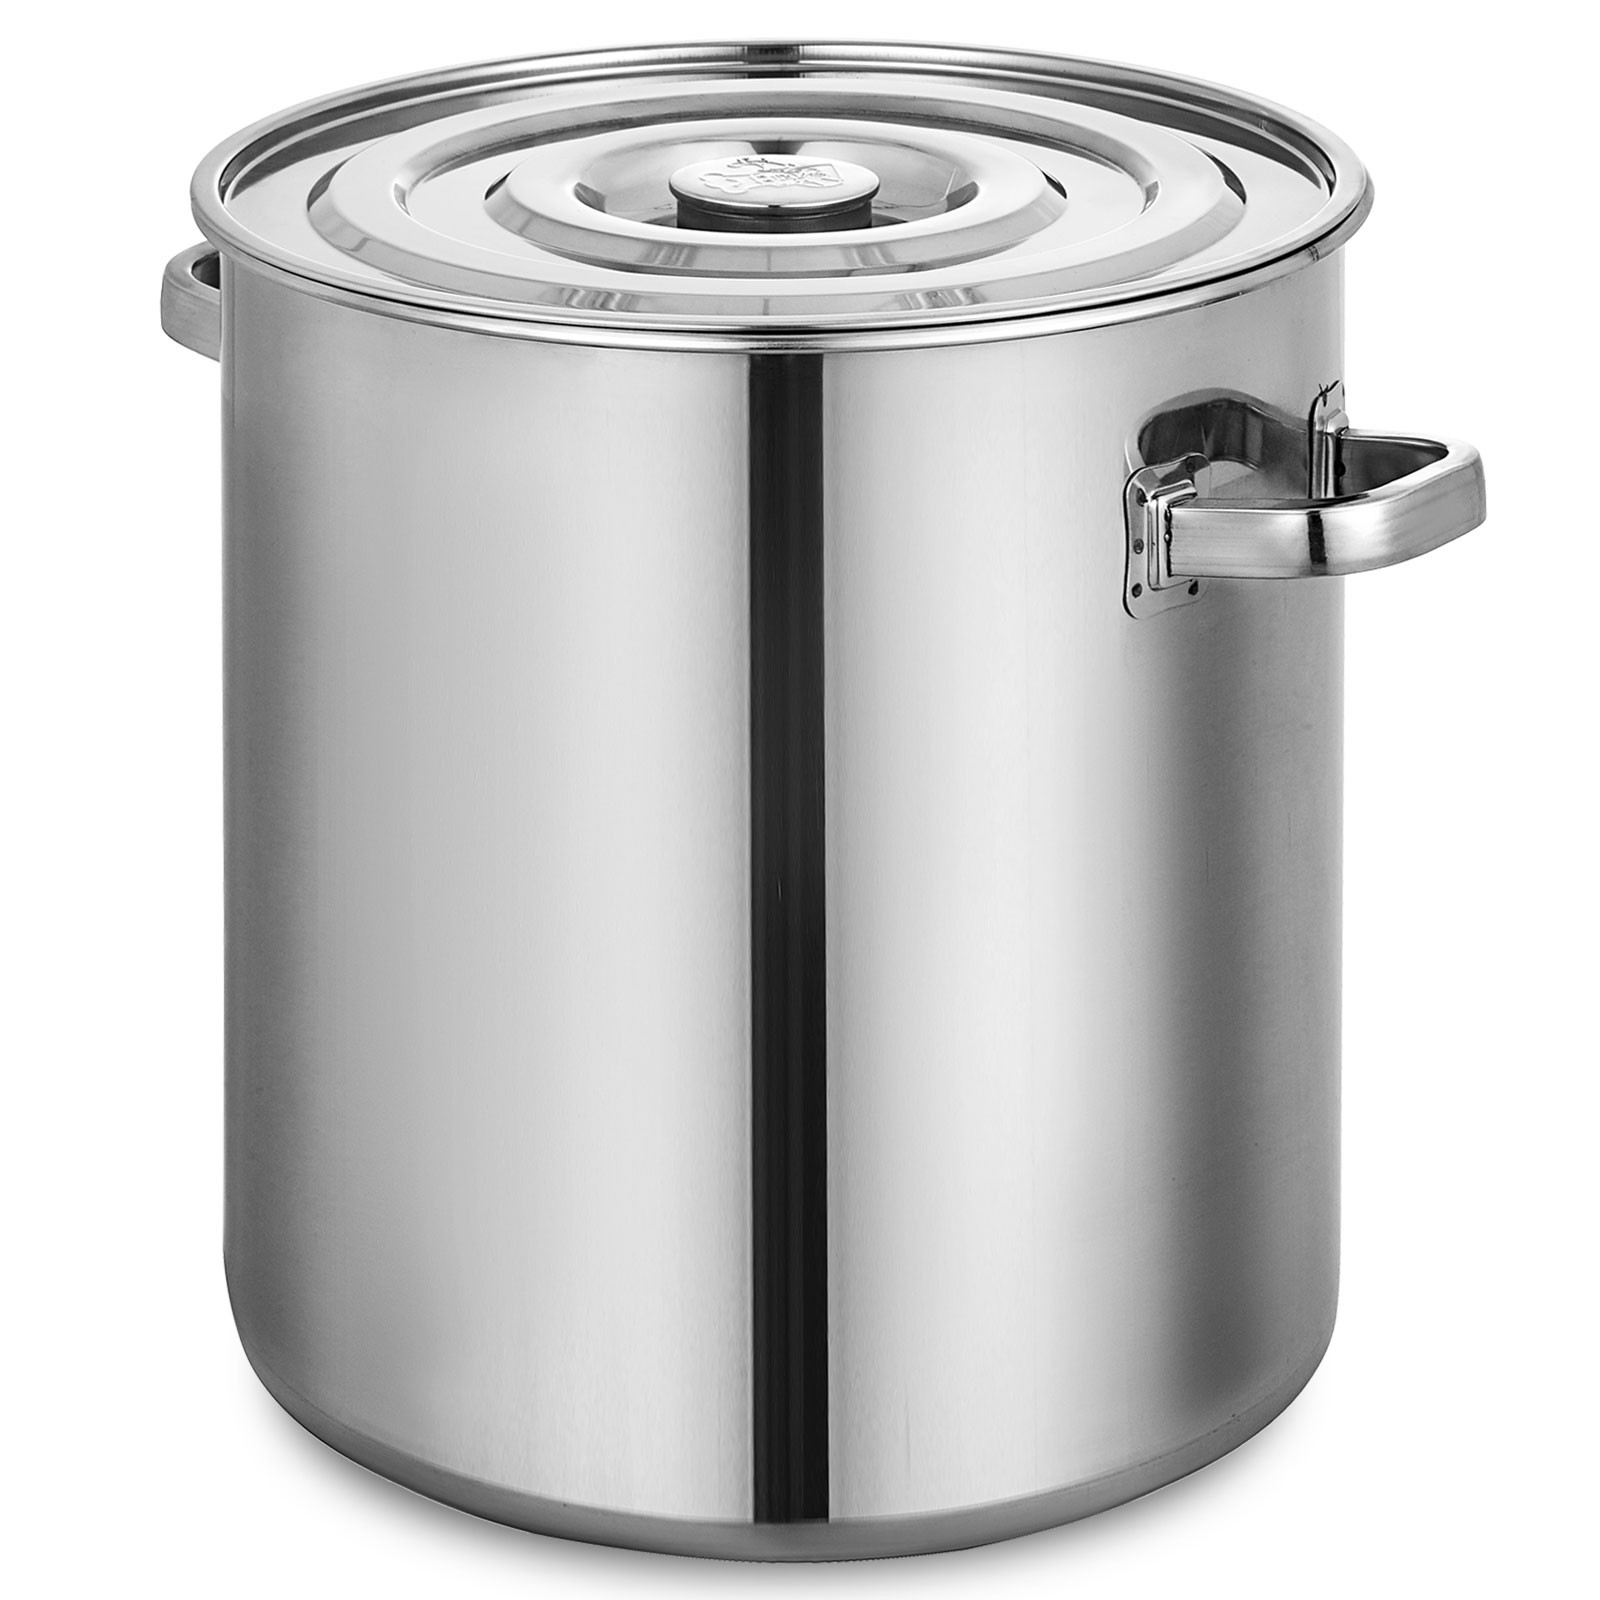 6 Sizes Stainless Steel Stock Pot Brewing Beer